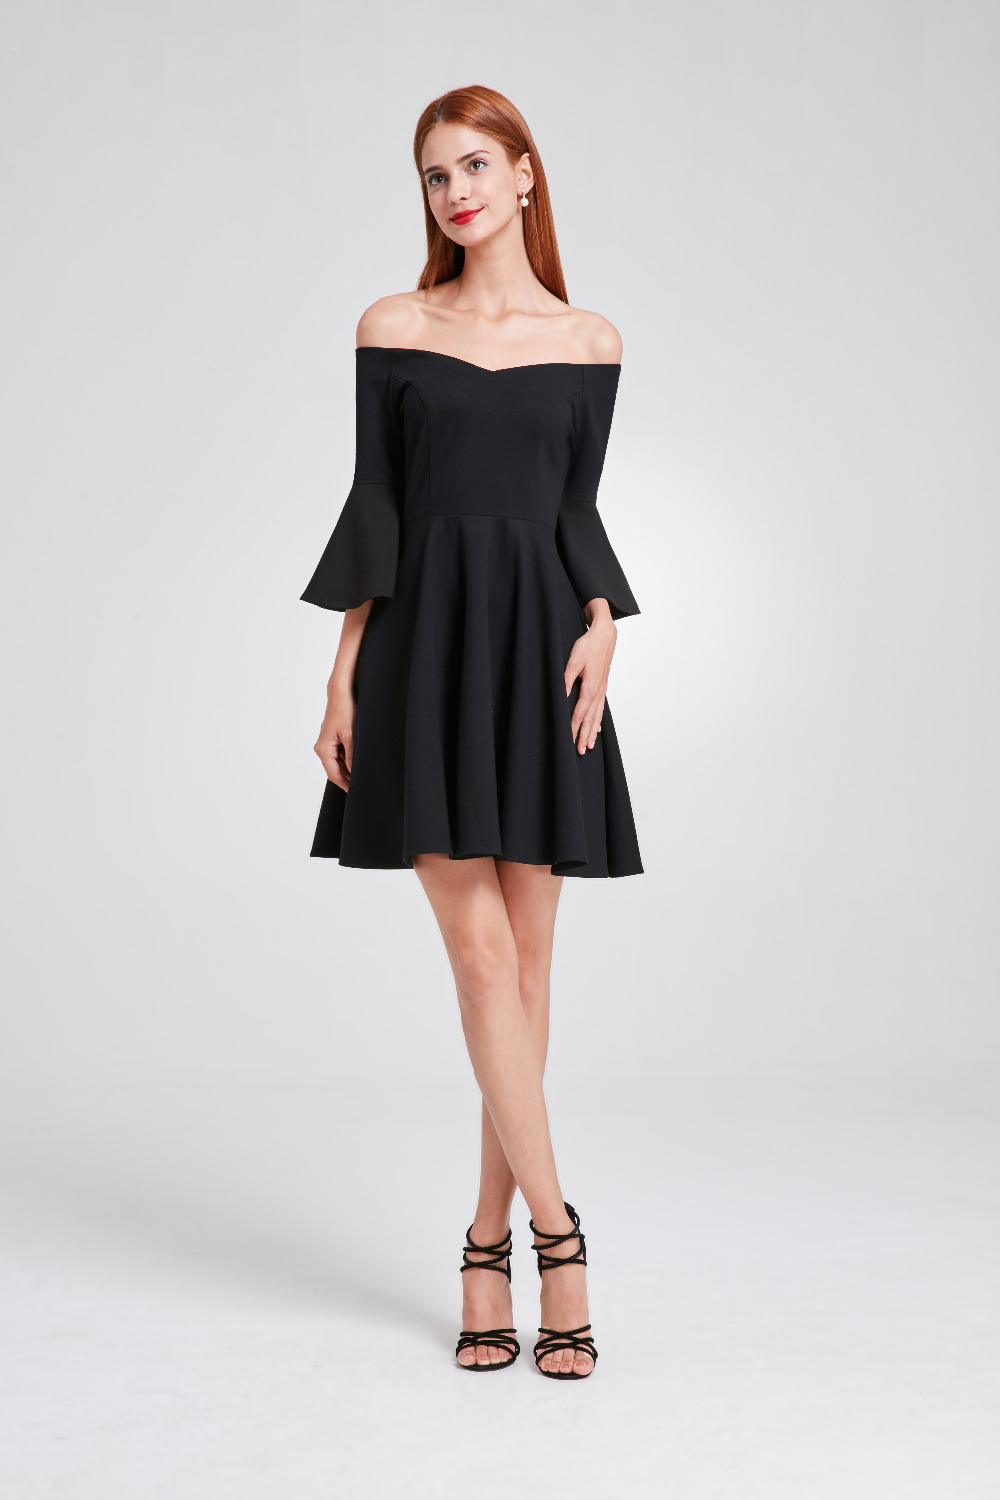 Ever Pretty Backless V Neck 2018 New Fashion Women Cocktail Dress Black Flare Sleeve Unique Cocktail Dresses EP05883-in Cocktail Dresses from Weddings ...